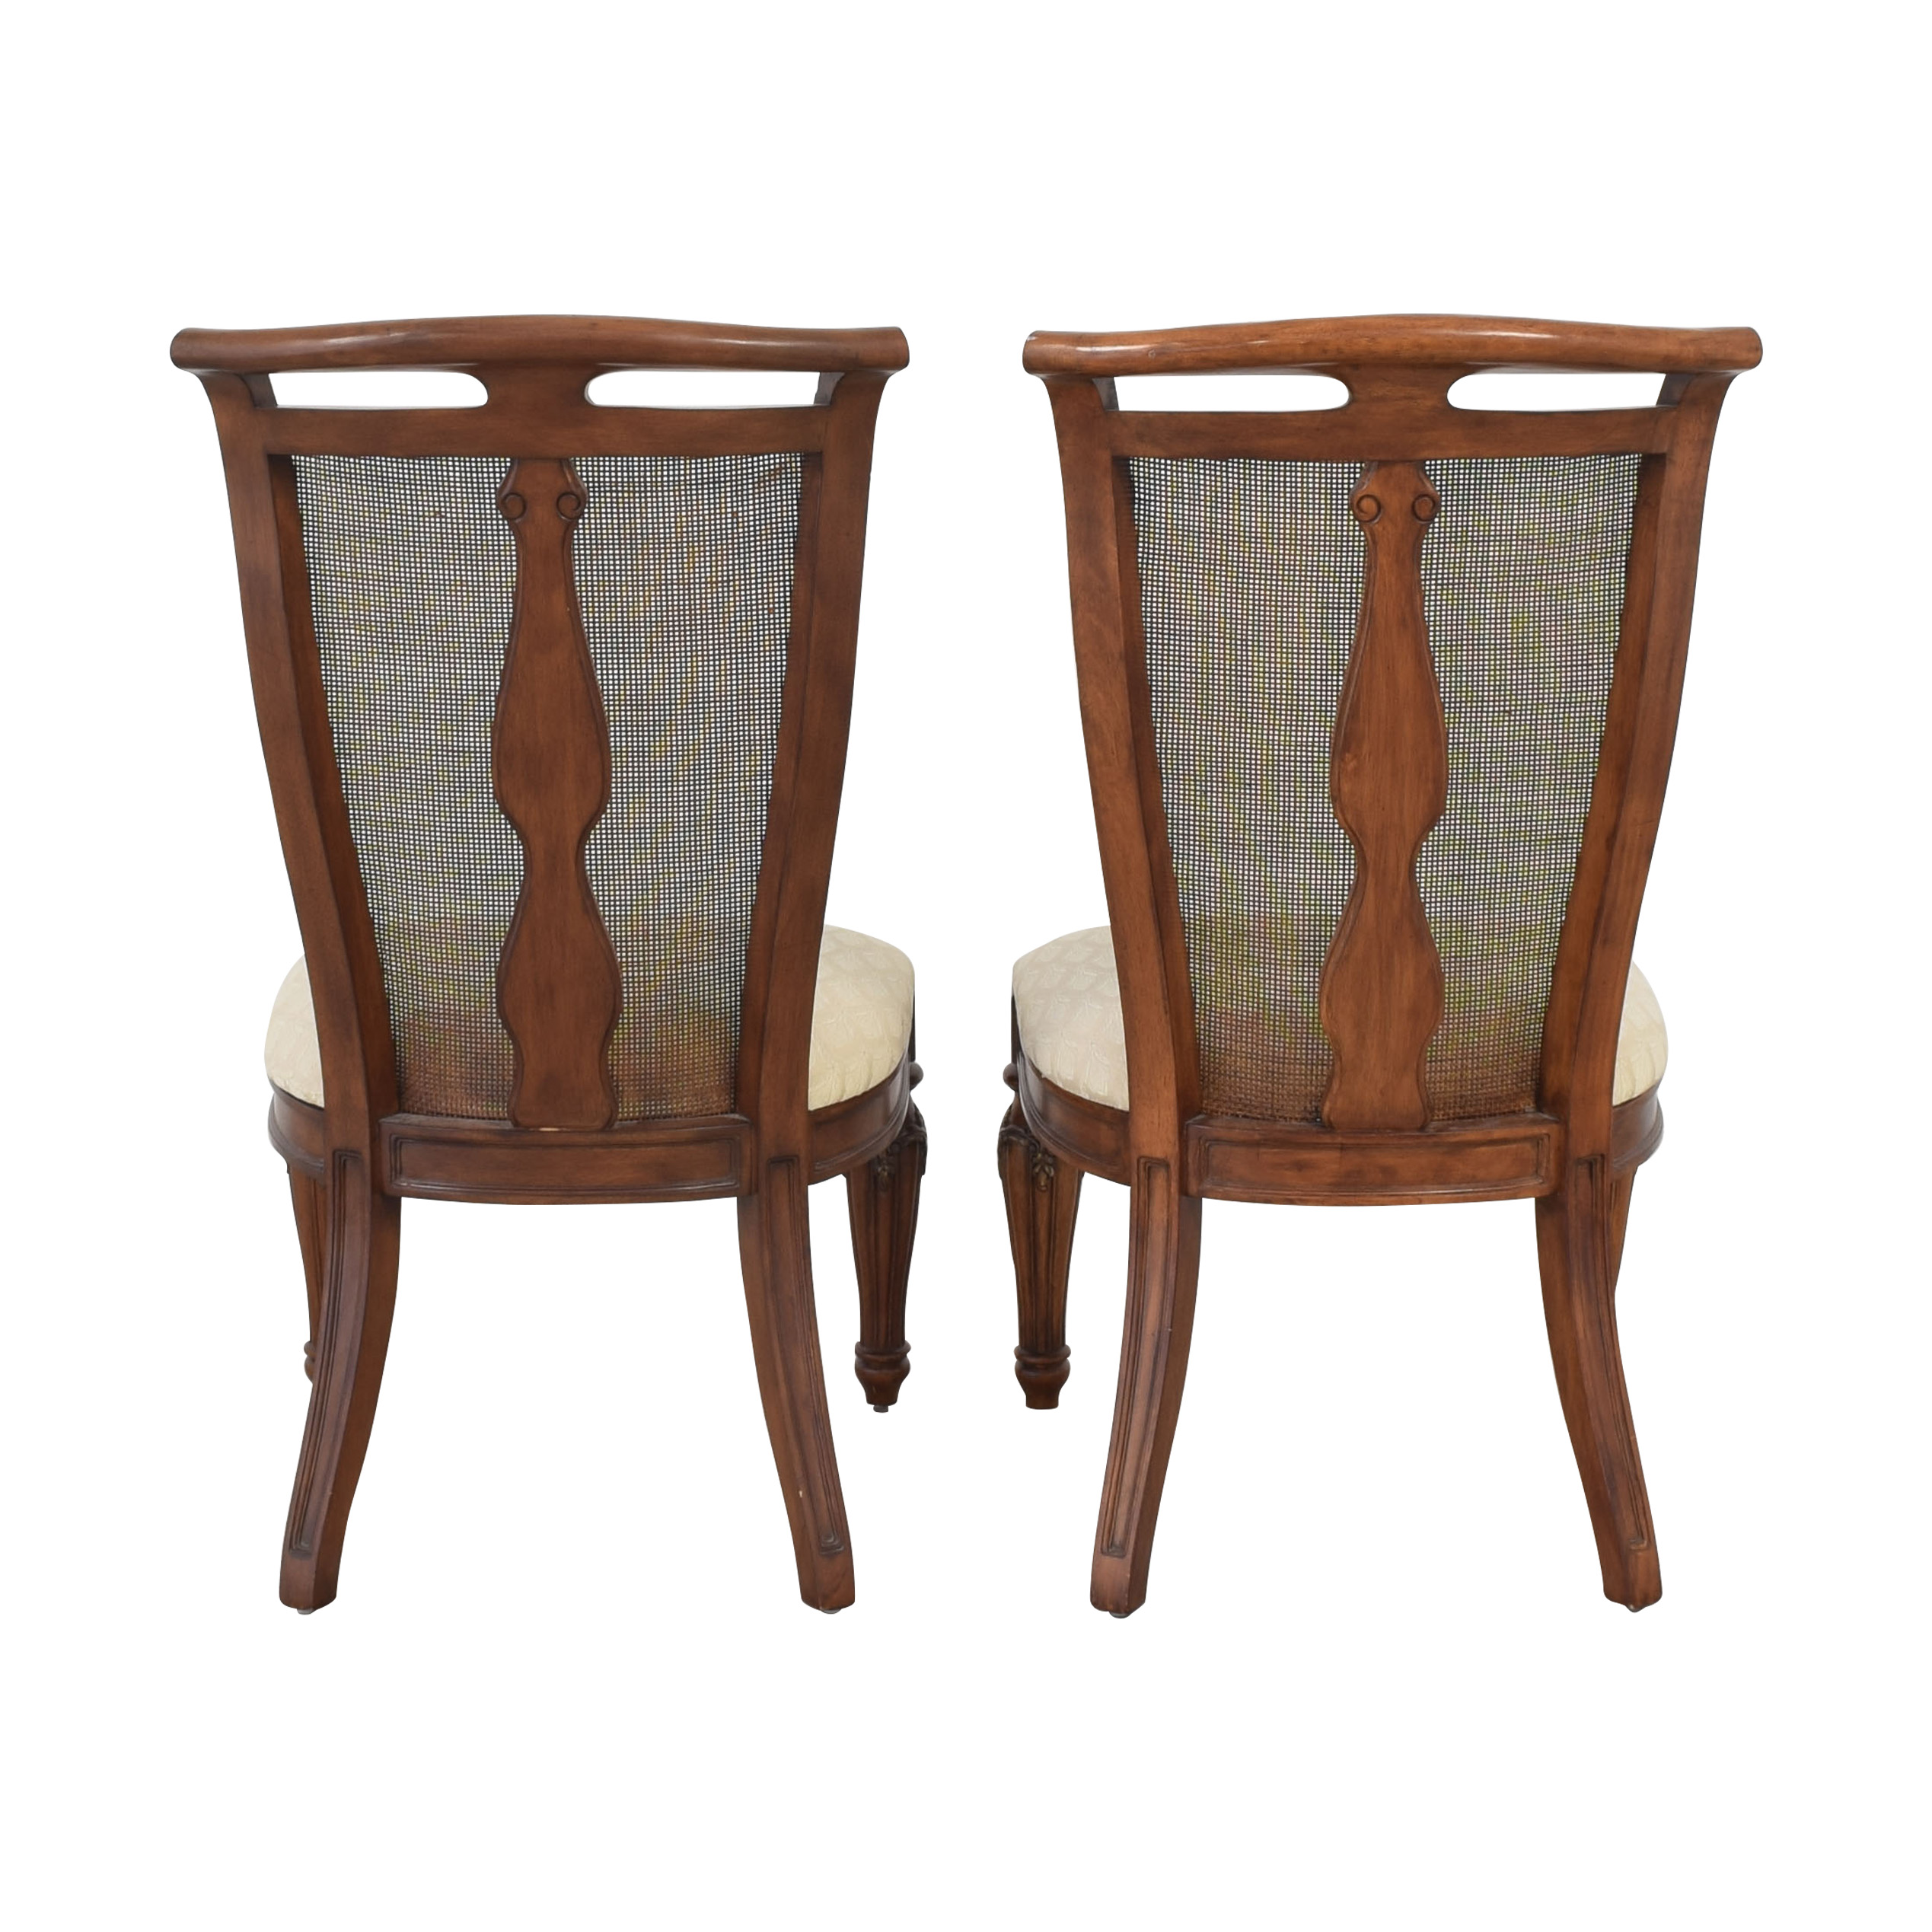 The Lane Company The Lane Company Side Dining Chairs on sale